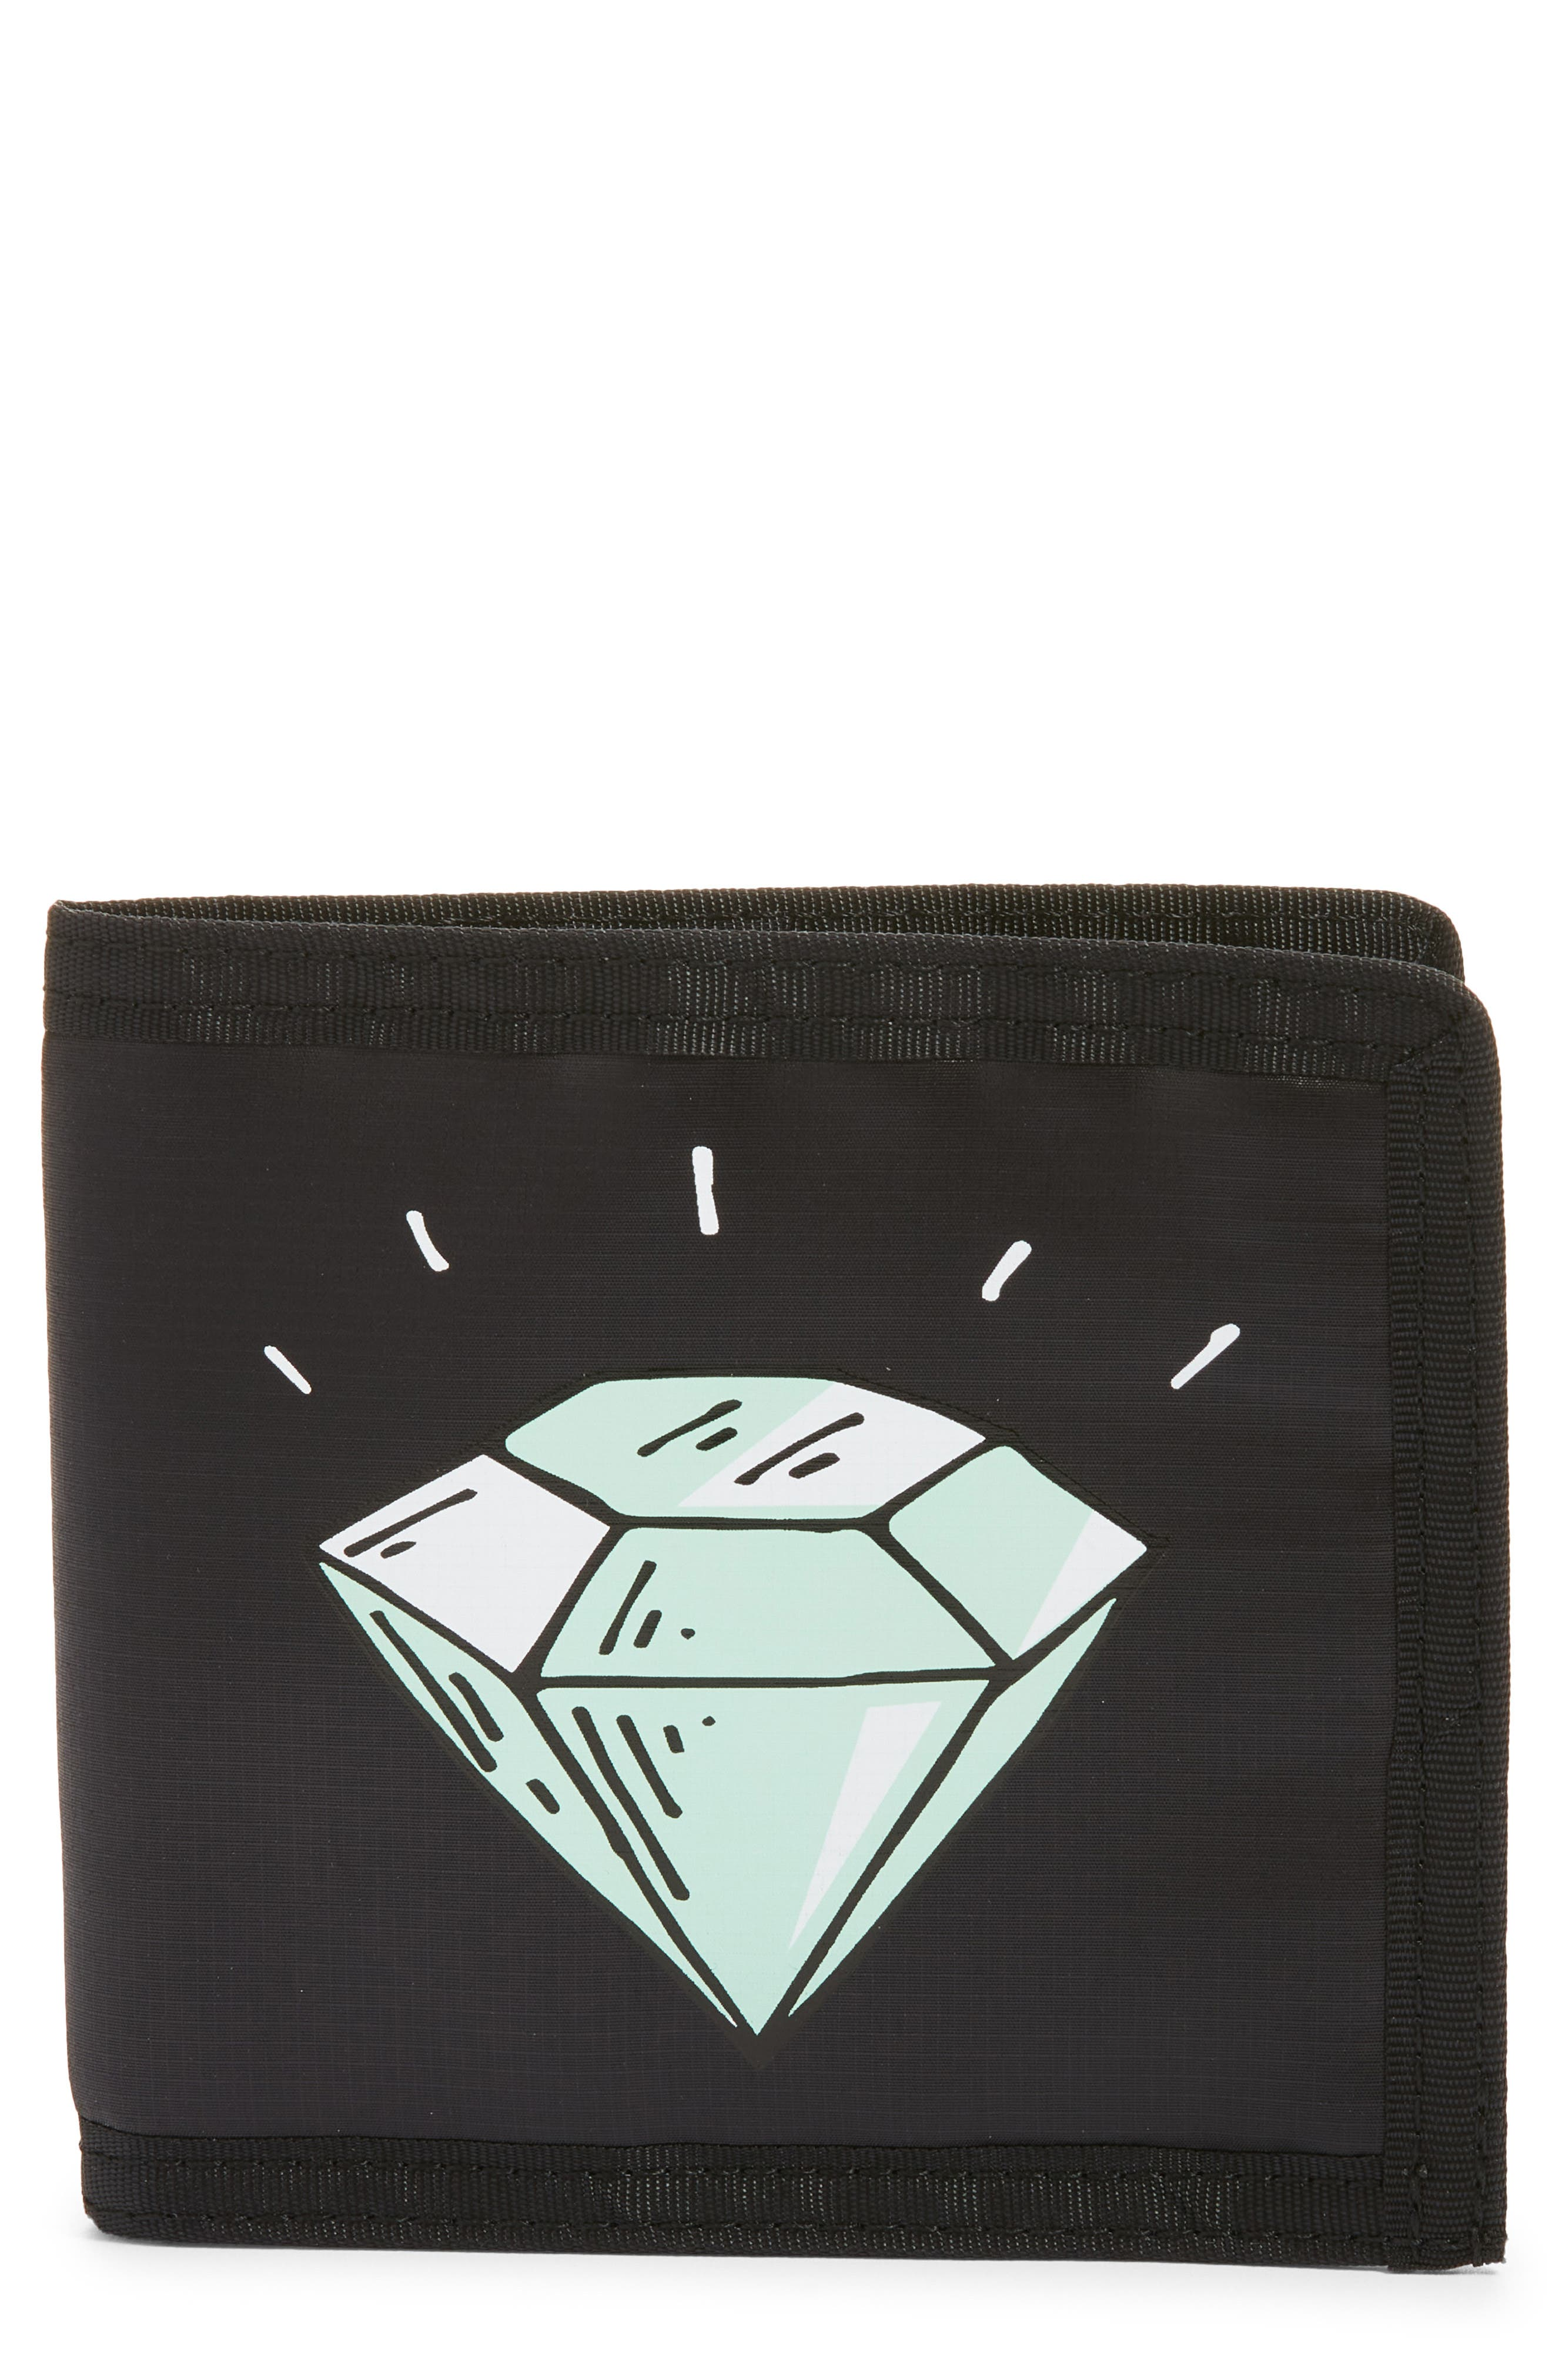 . What The Diamond Wallet